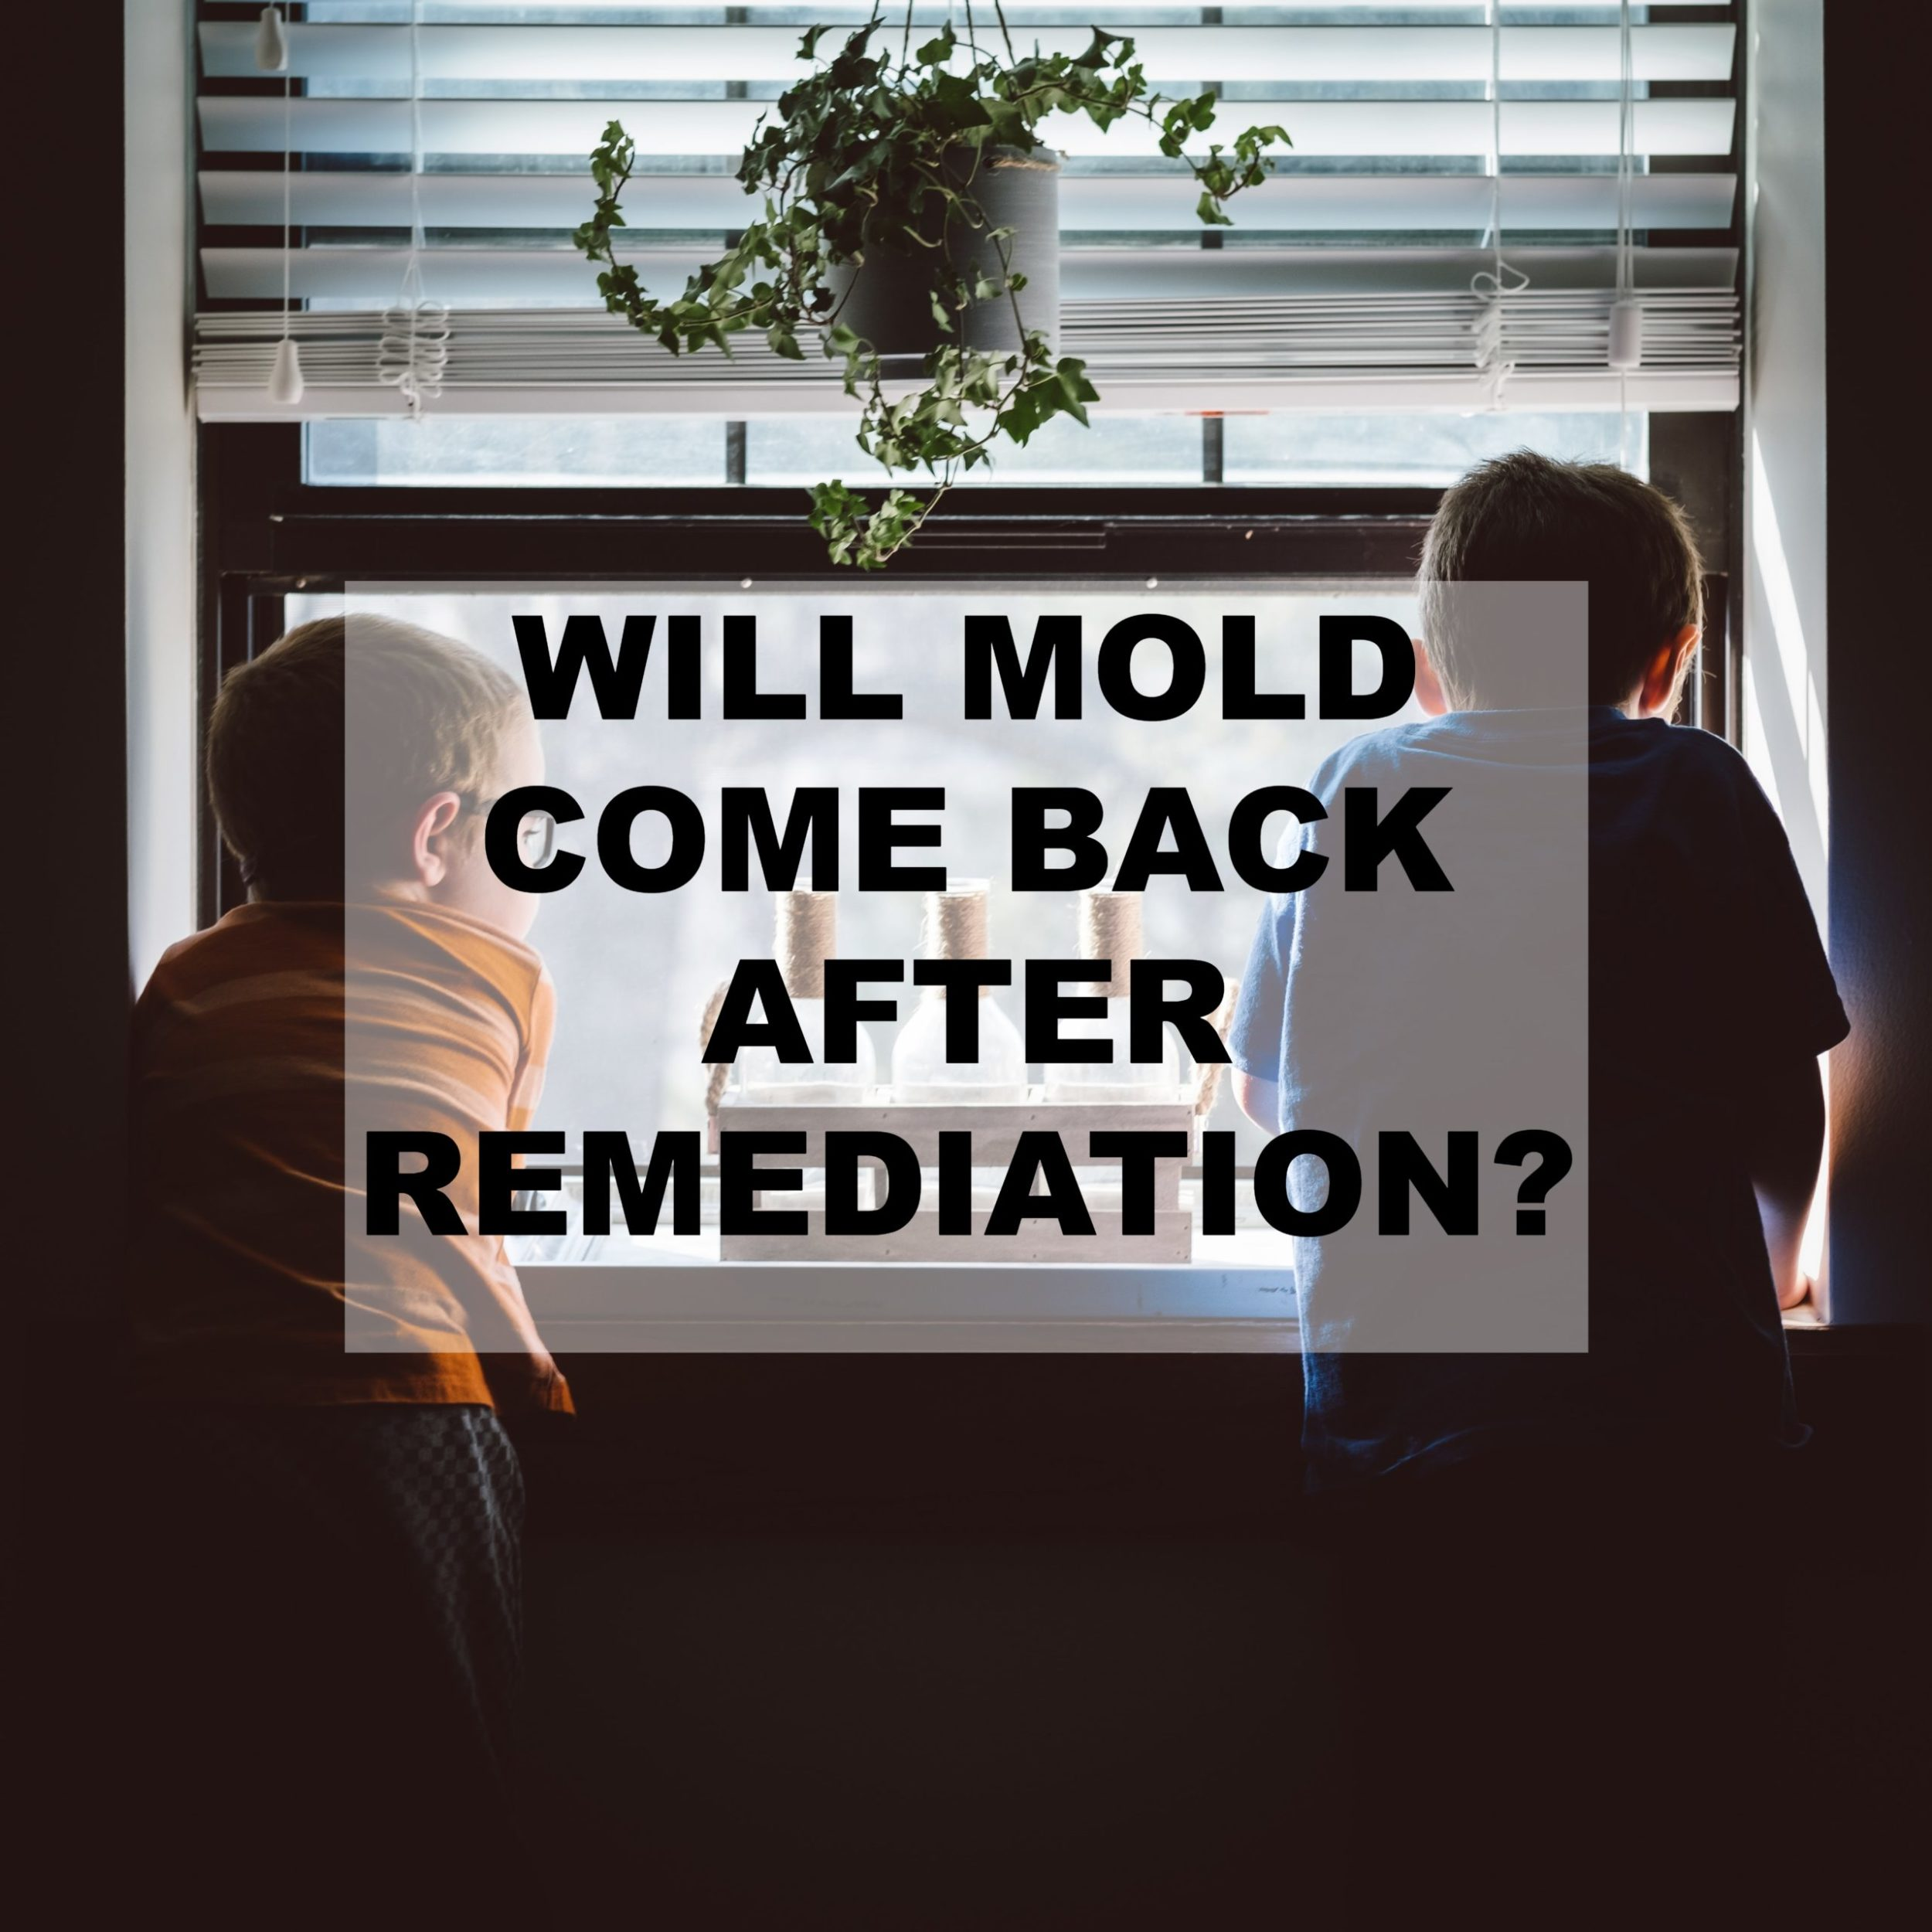 Will Mold Come Back After Remediation?